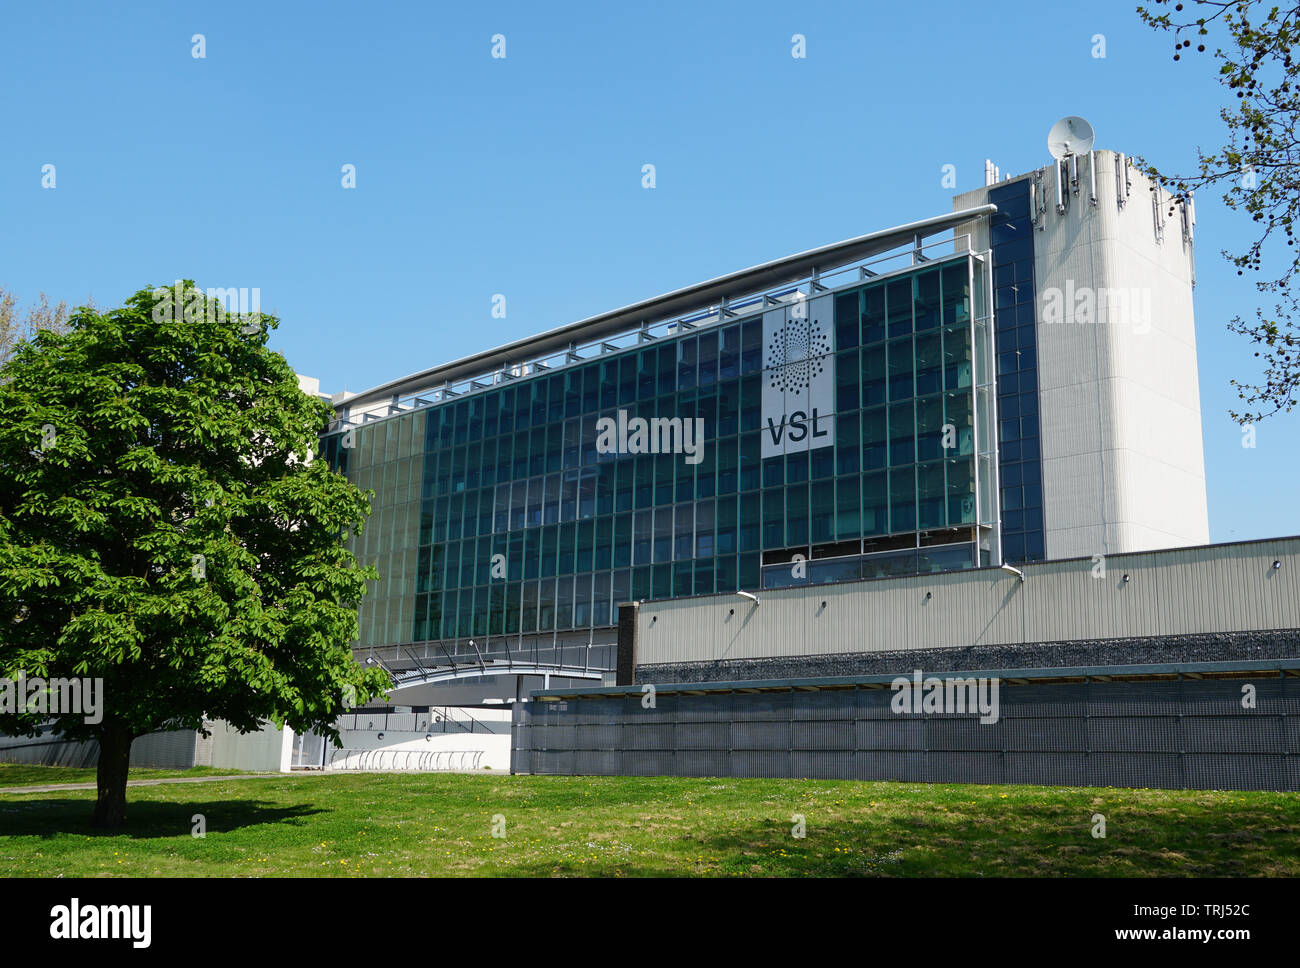 VSL, Dutch Metrology Institute and NMI building in Delft. - Stock Image